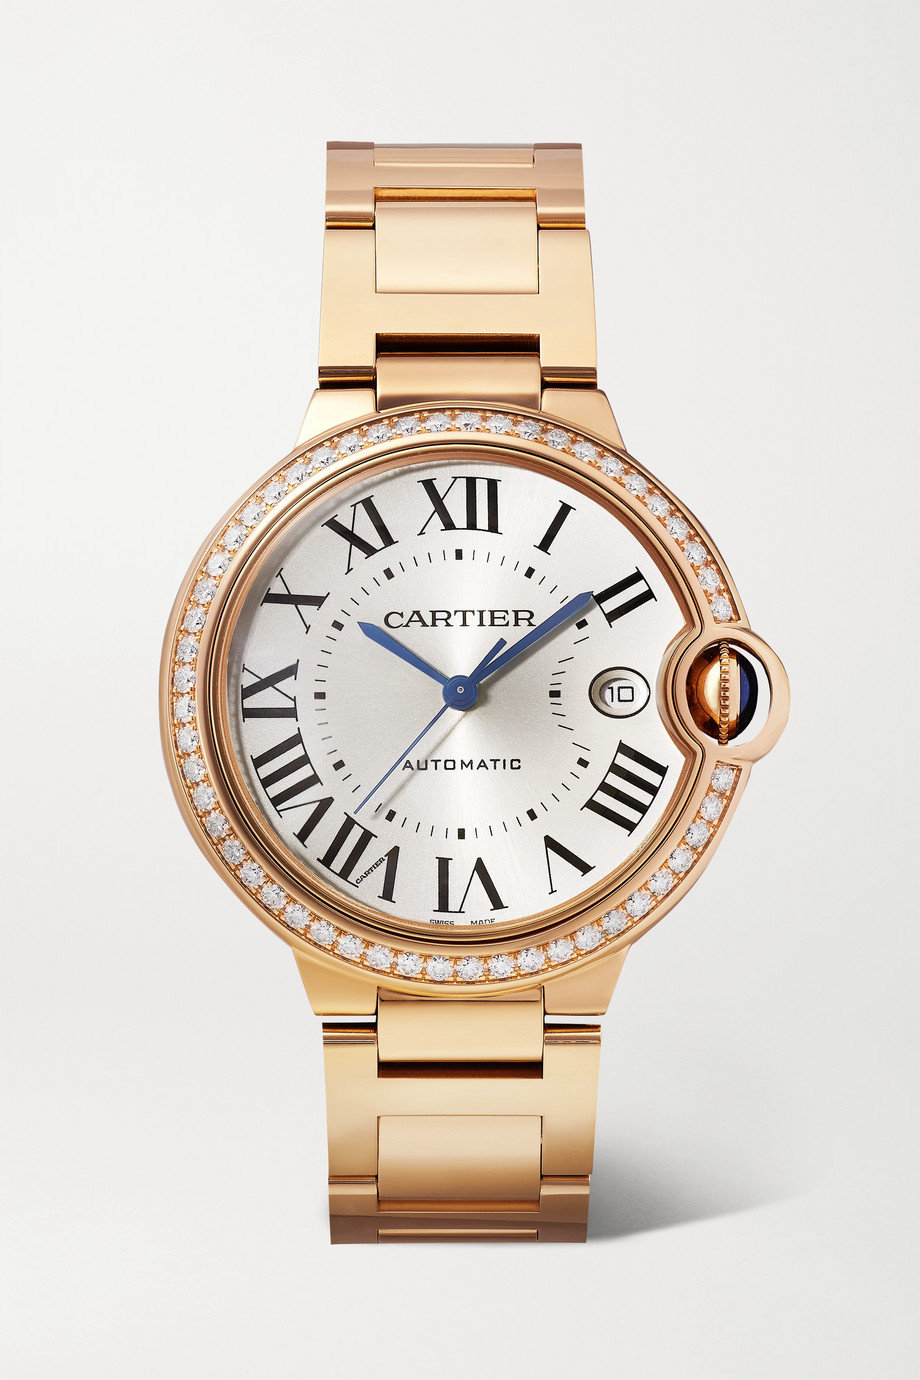 CARTIER Ballon Bleu de Cartier Automatic 40mm 18-karat pink gold and diamond watch